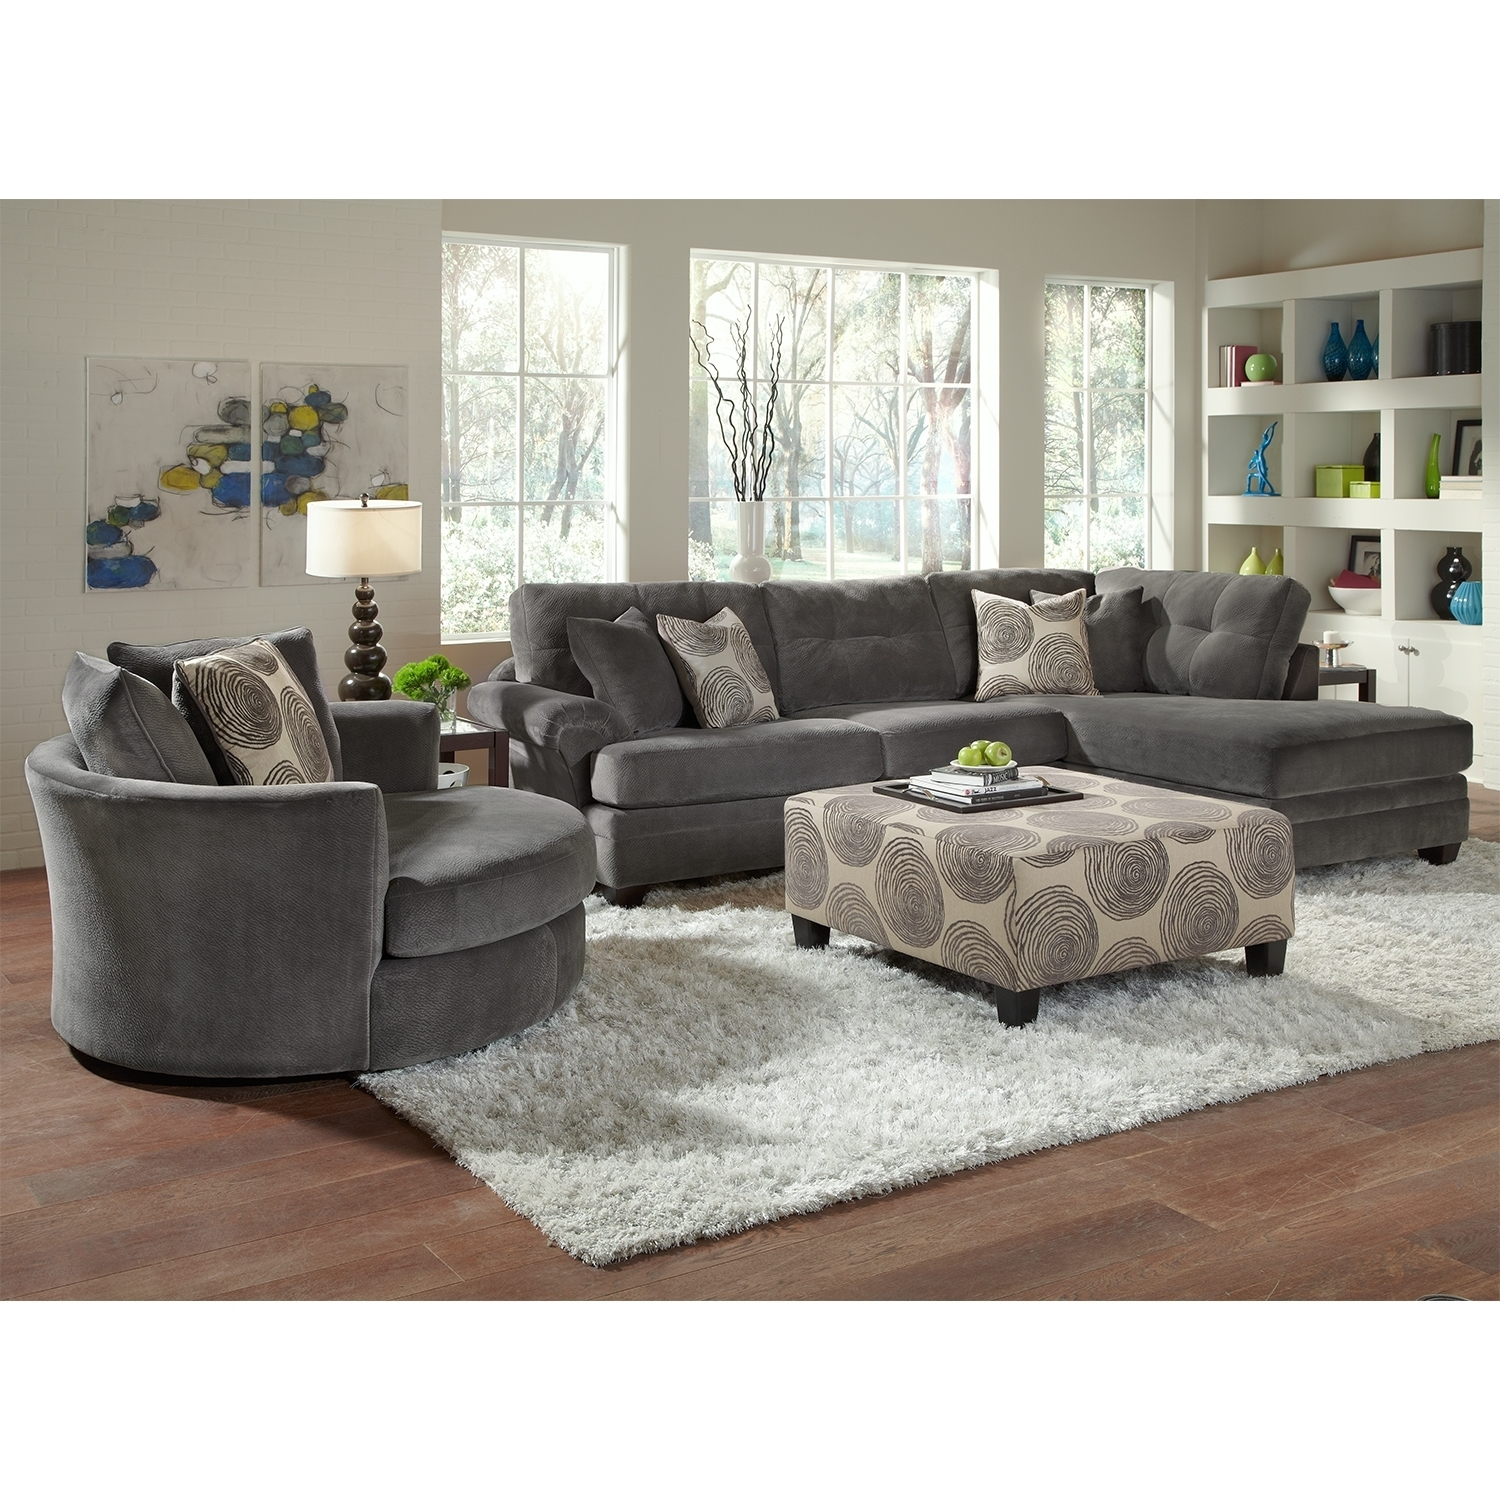 10 Best Rooms To Go Sectional Sofas